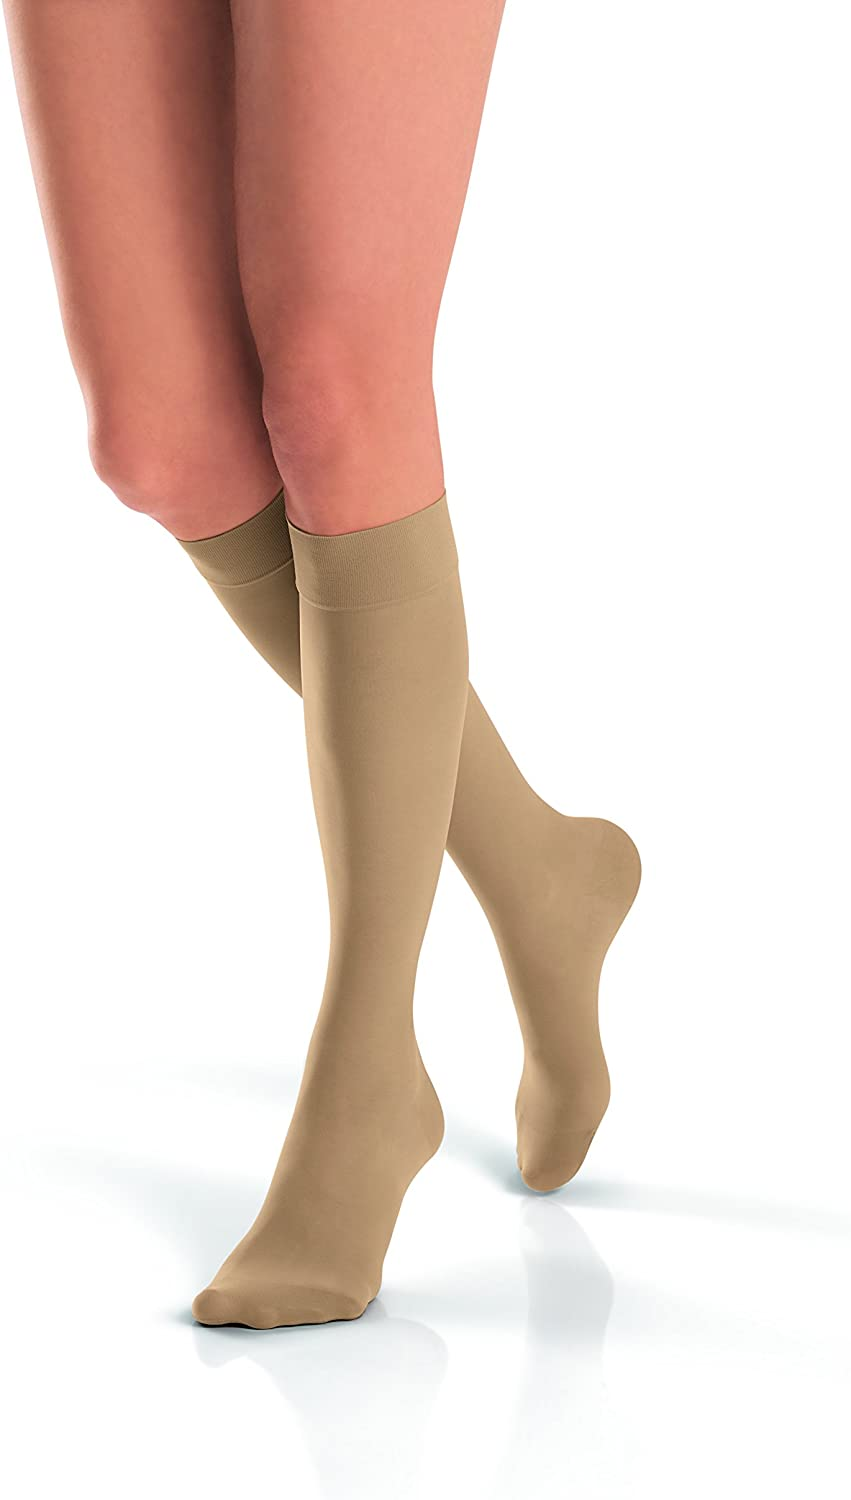 Jobst Women's UltraSheer Challenge the lowest Beauty products price Light Support Beige Knee W Highs Silky